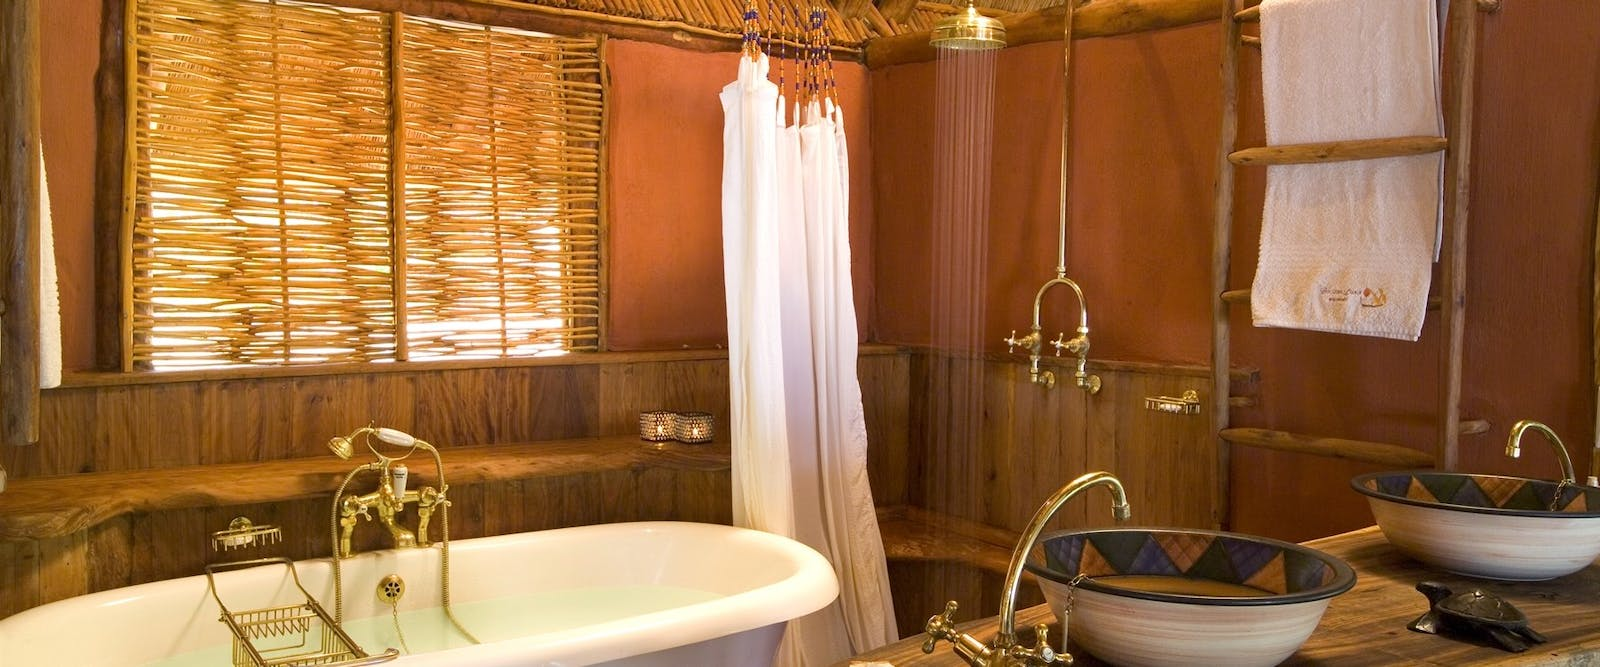 Bathroom interior at &Beyond Benguerra Island Lodge